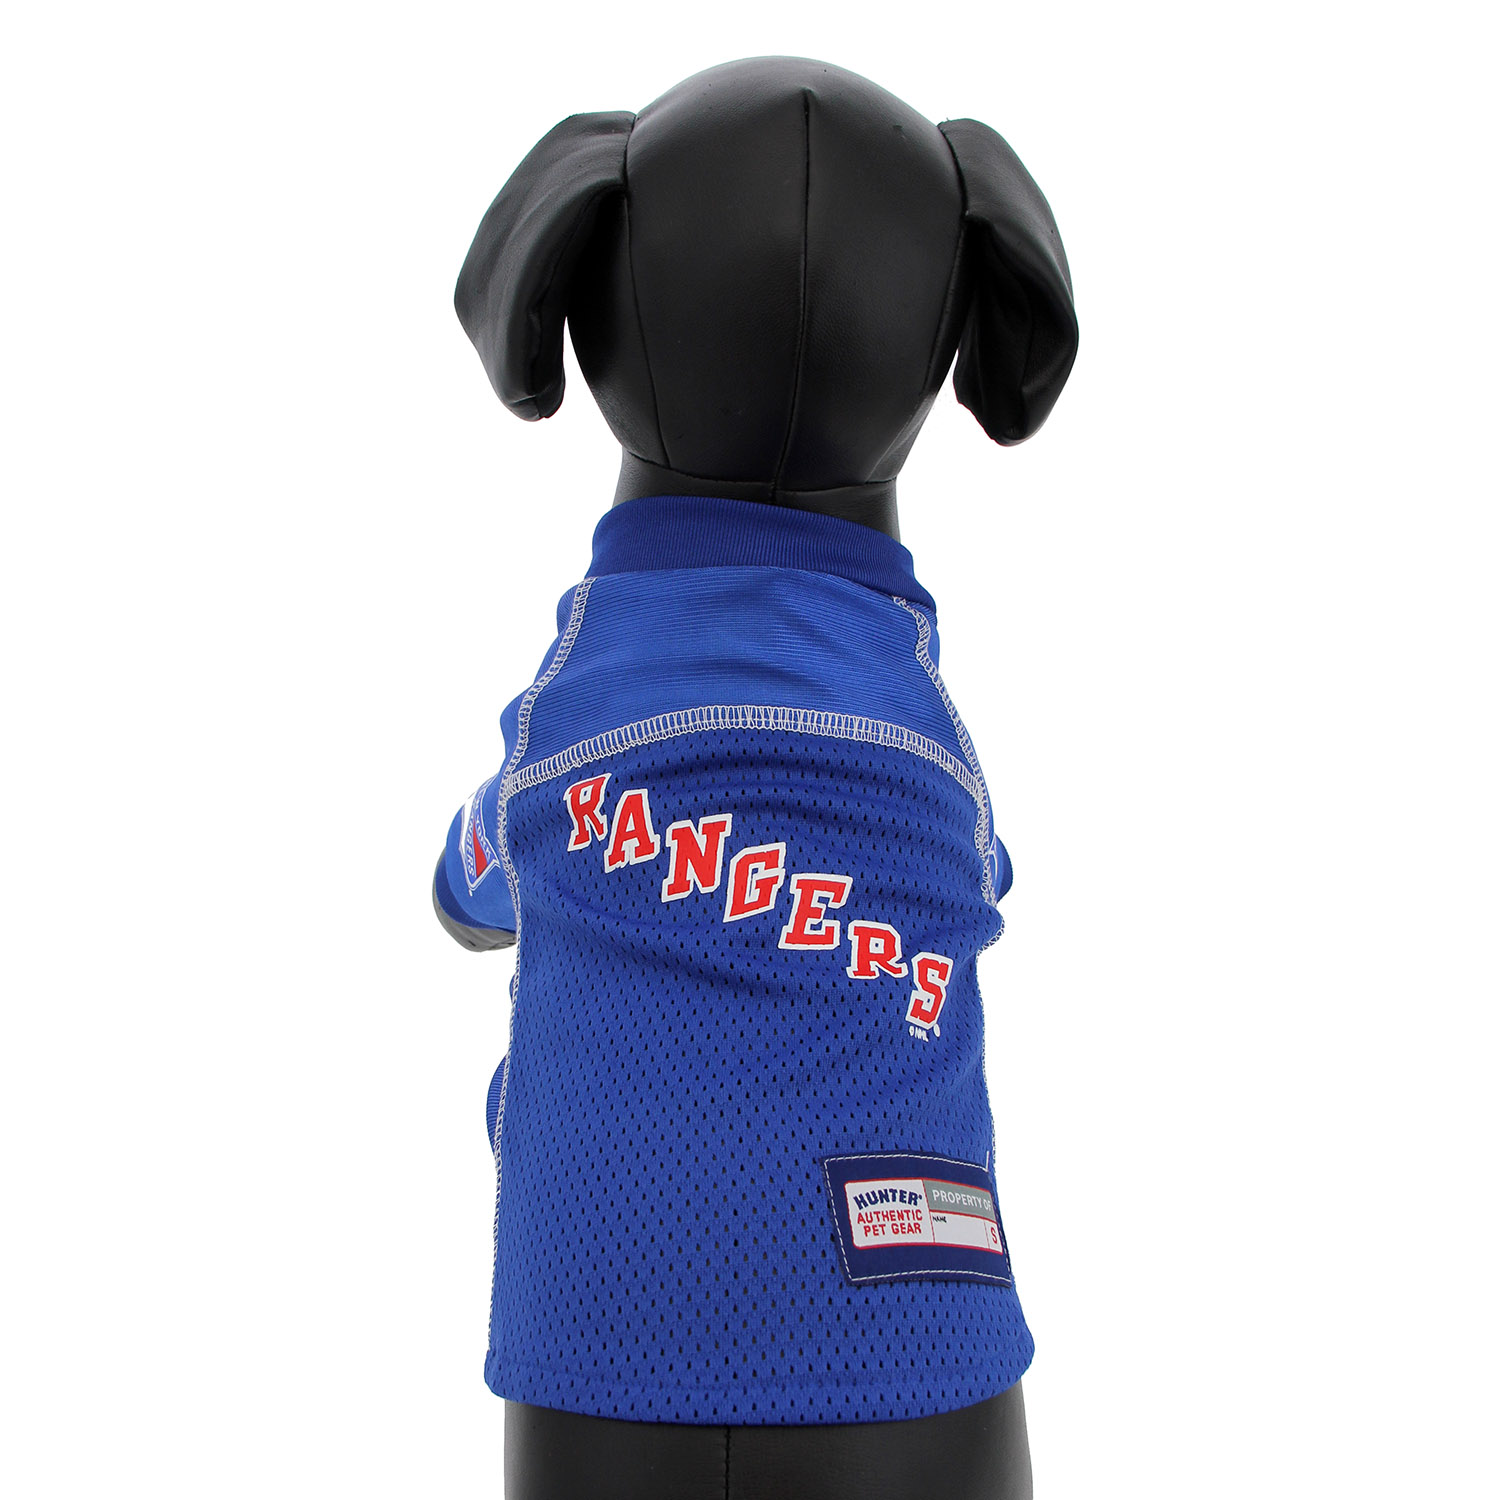 3a8b7d4fa19 ... New York Rangers Dog Jersey - Blue with Same Day Shipping ...